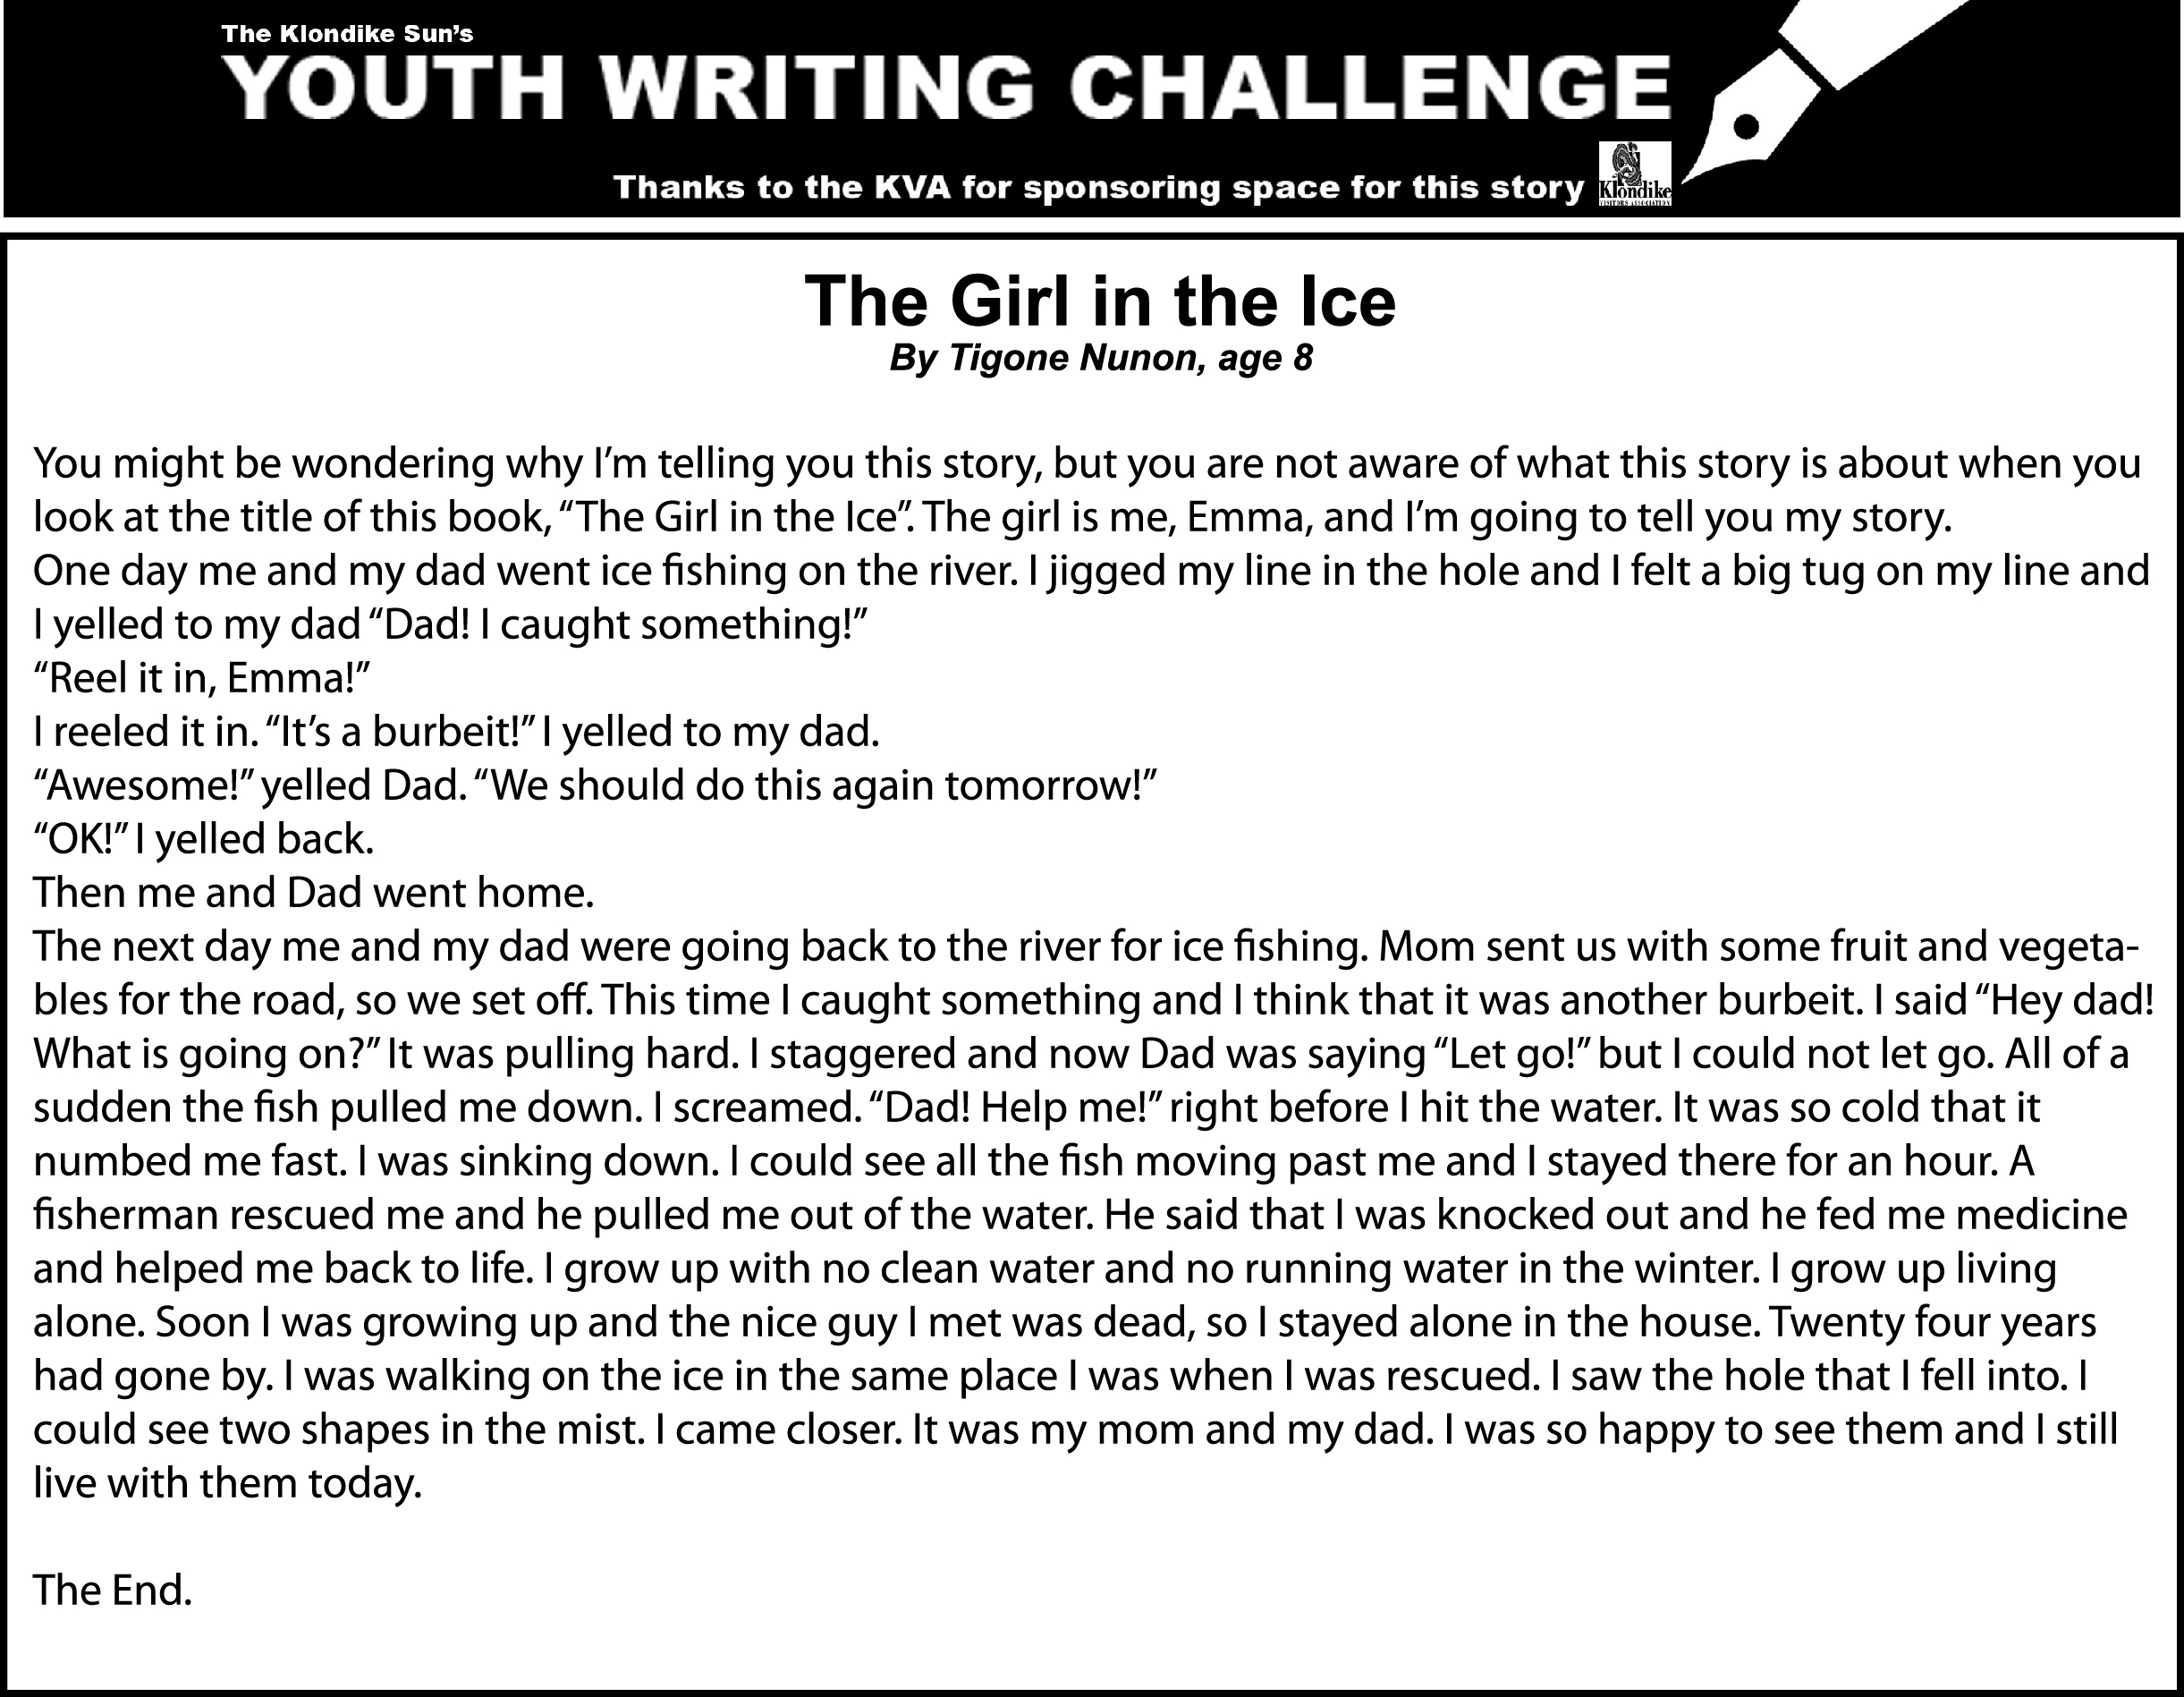 The Giril in the ice - YWC